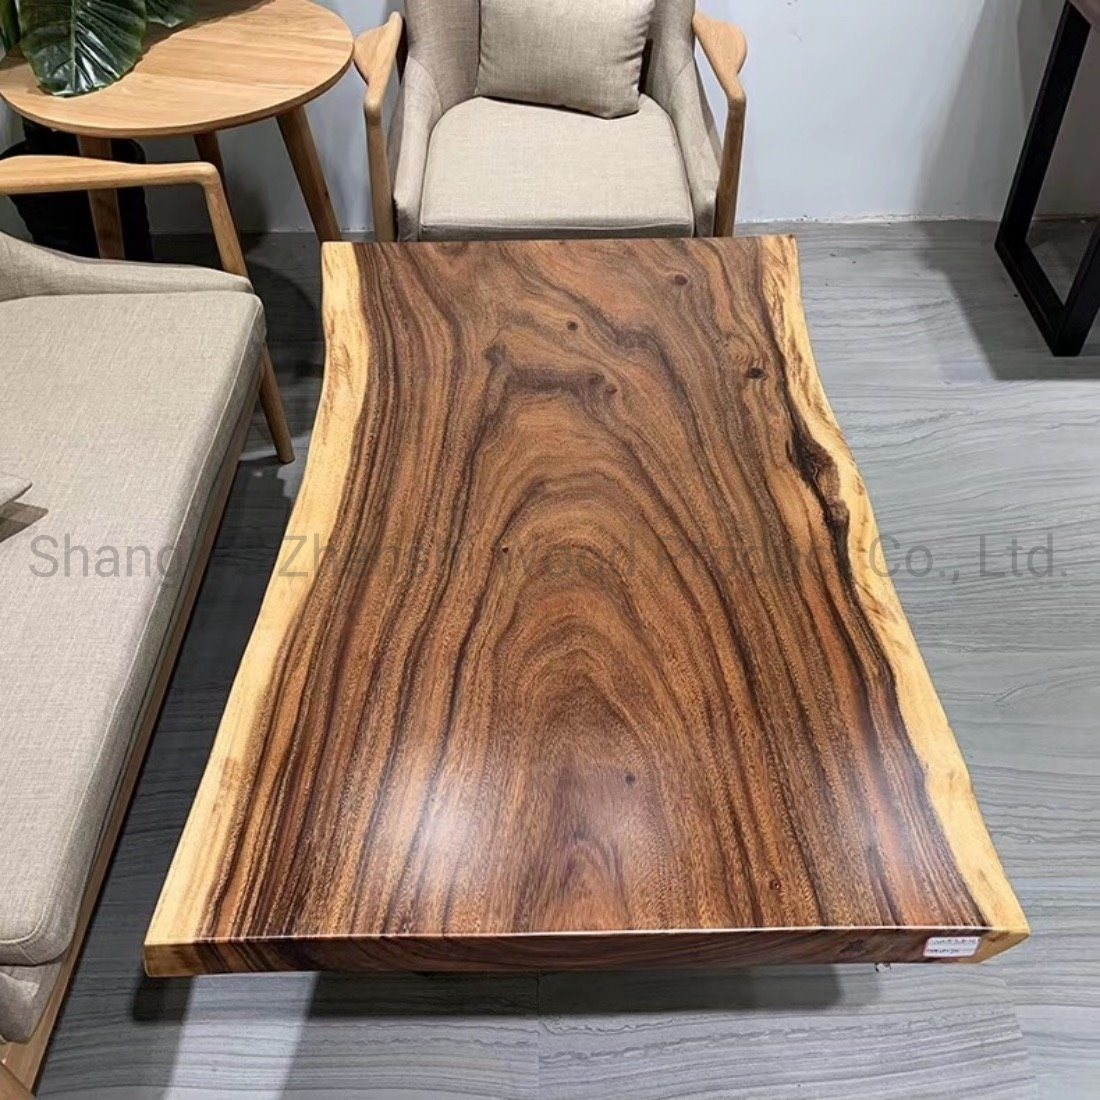 China Live Edge Coffee Table Raw Edge Slab Table Photos Pictures Made In China Com